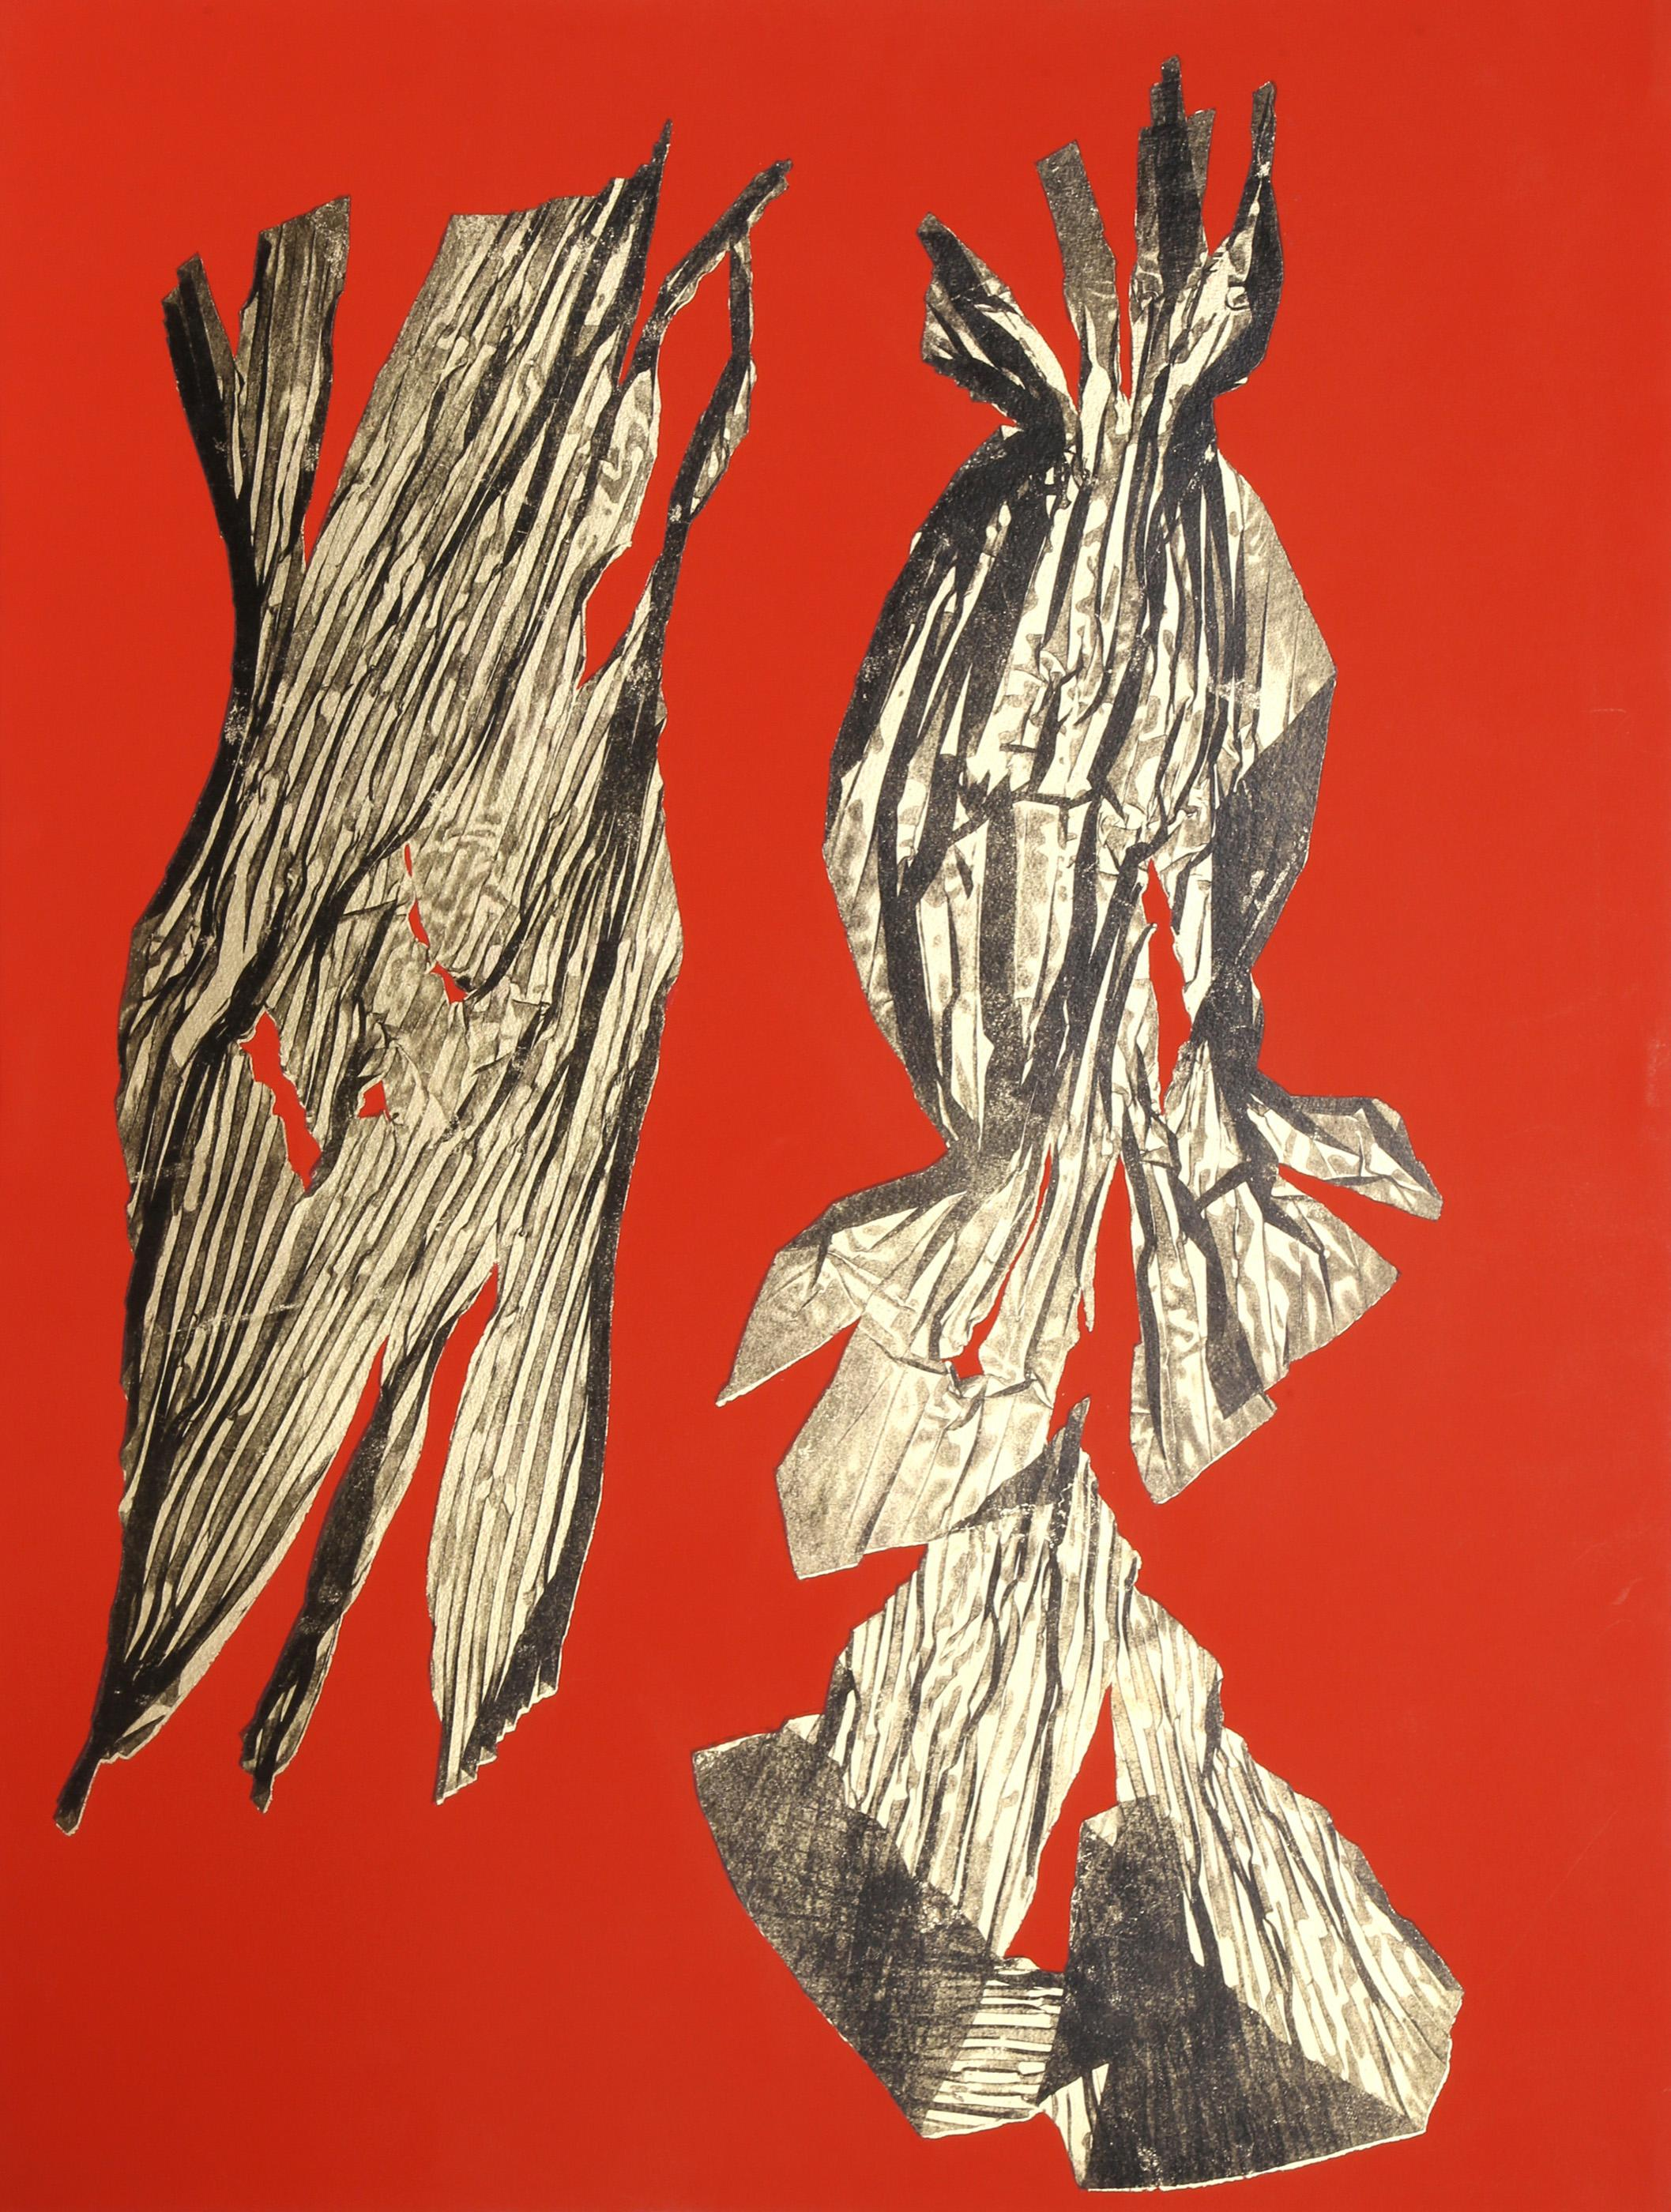 Lynda Benglis, Dual Nature (Red), Lithograph with Gold Leaf